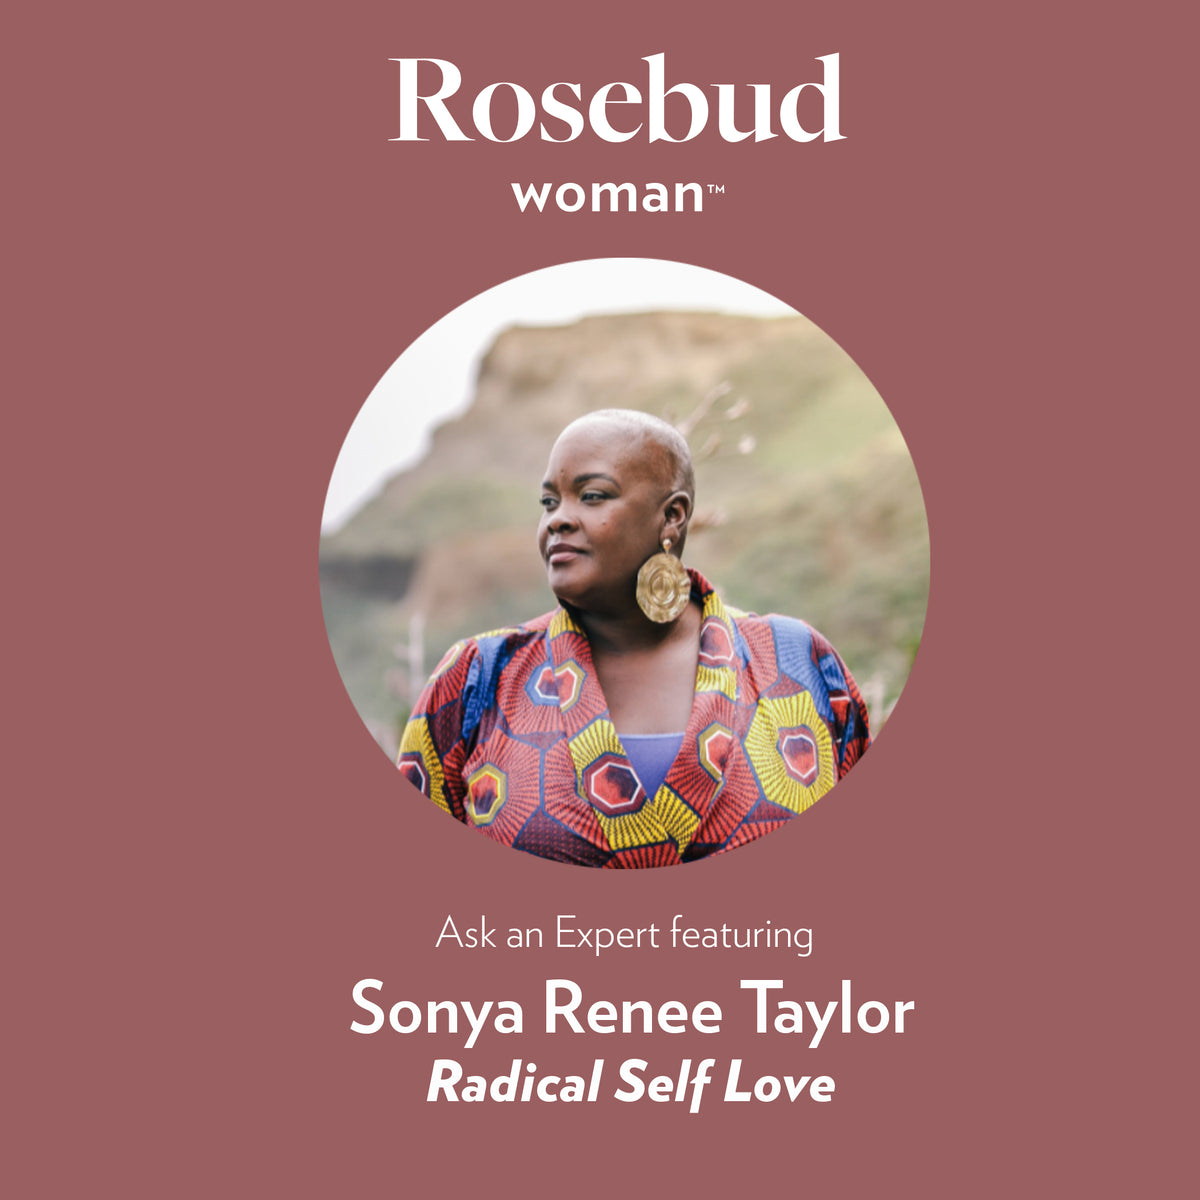 Women's Wisdom, Episode 4: Sonya Renee Taylor talks about Radical Self Love, Call Out Culture and More